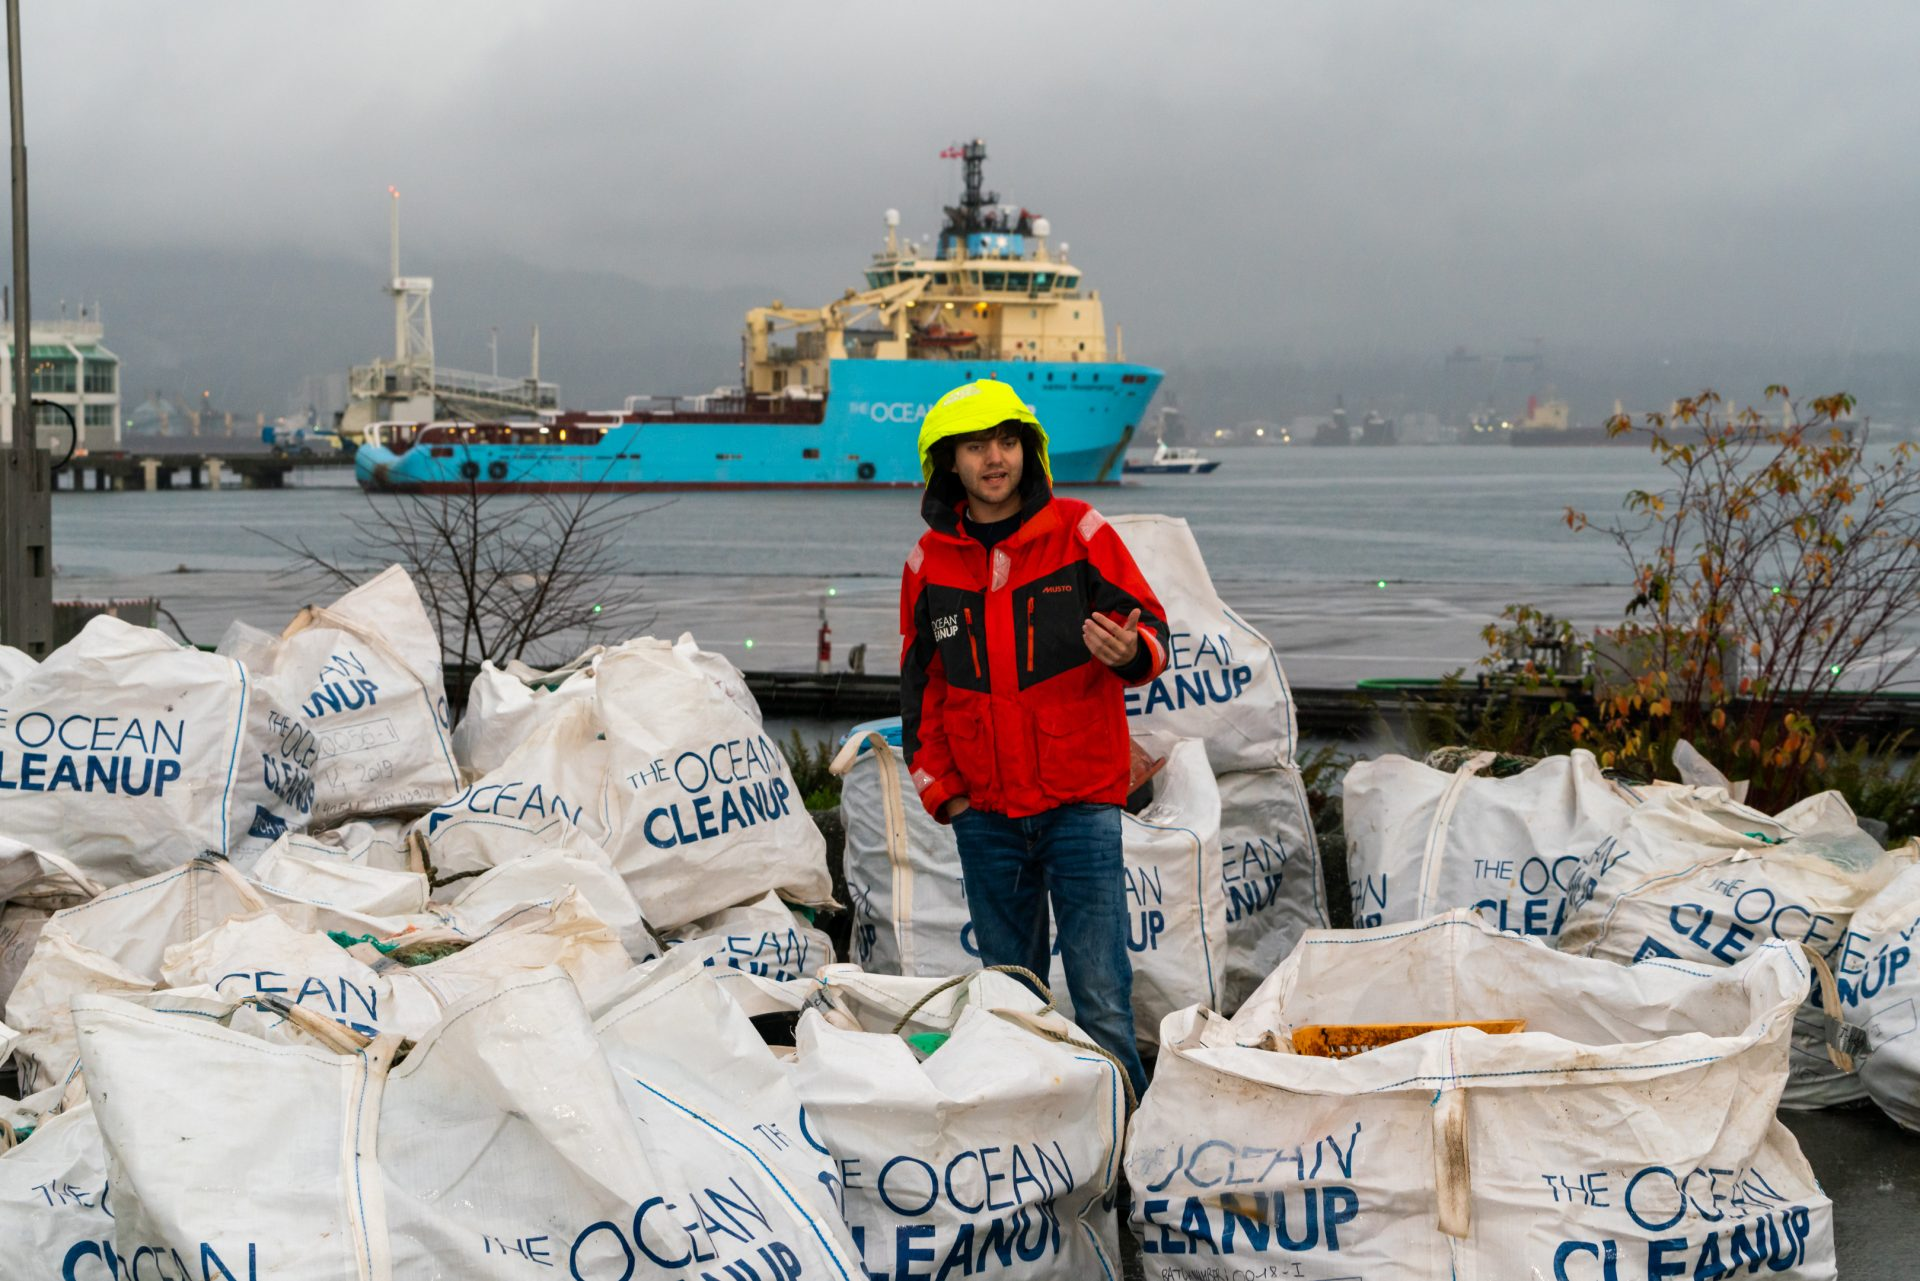 Young Boyan, founder of the ocean cleanup, wearing high-vis gear and yellow helmet